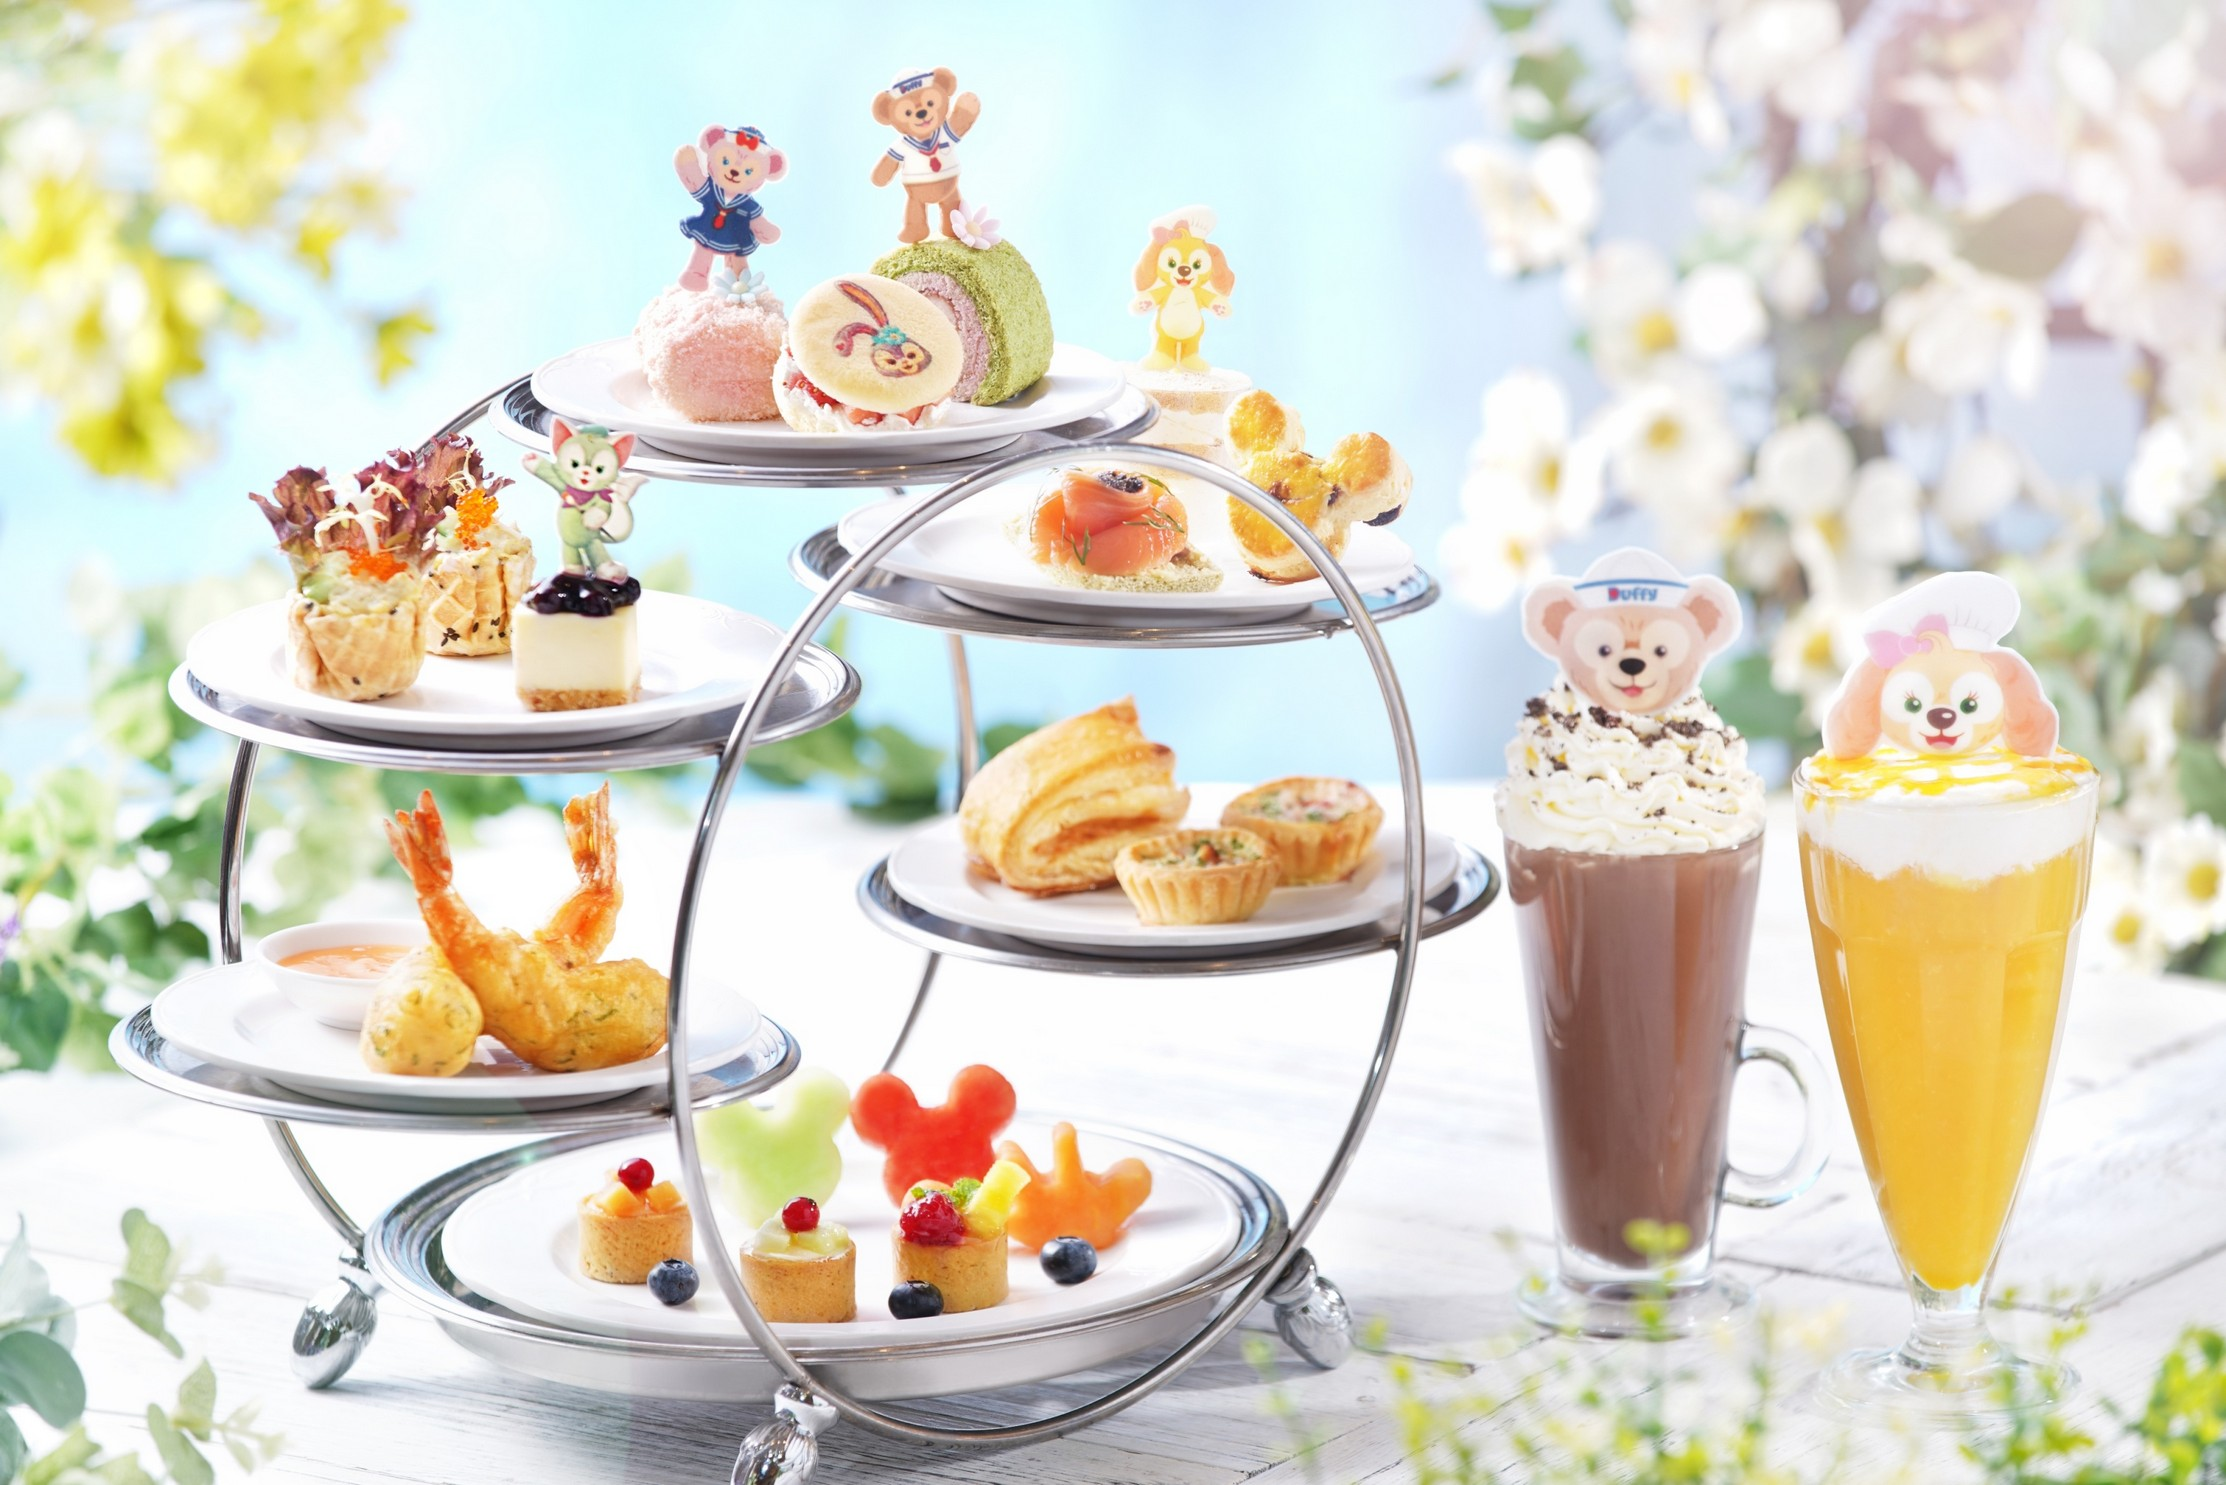 Duffy and Friends Afternoon Tea Set